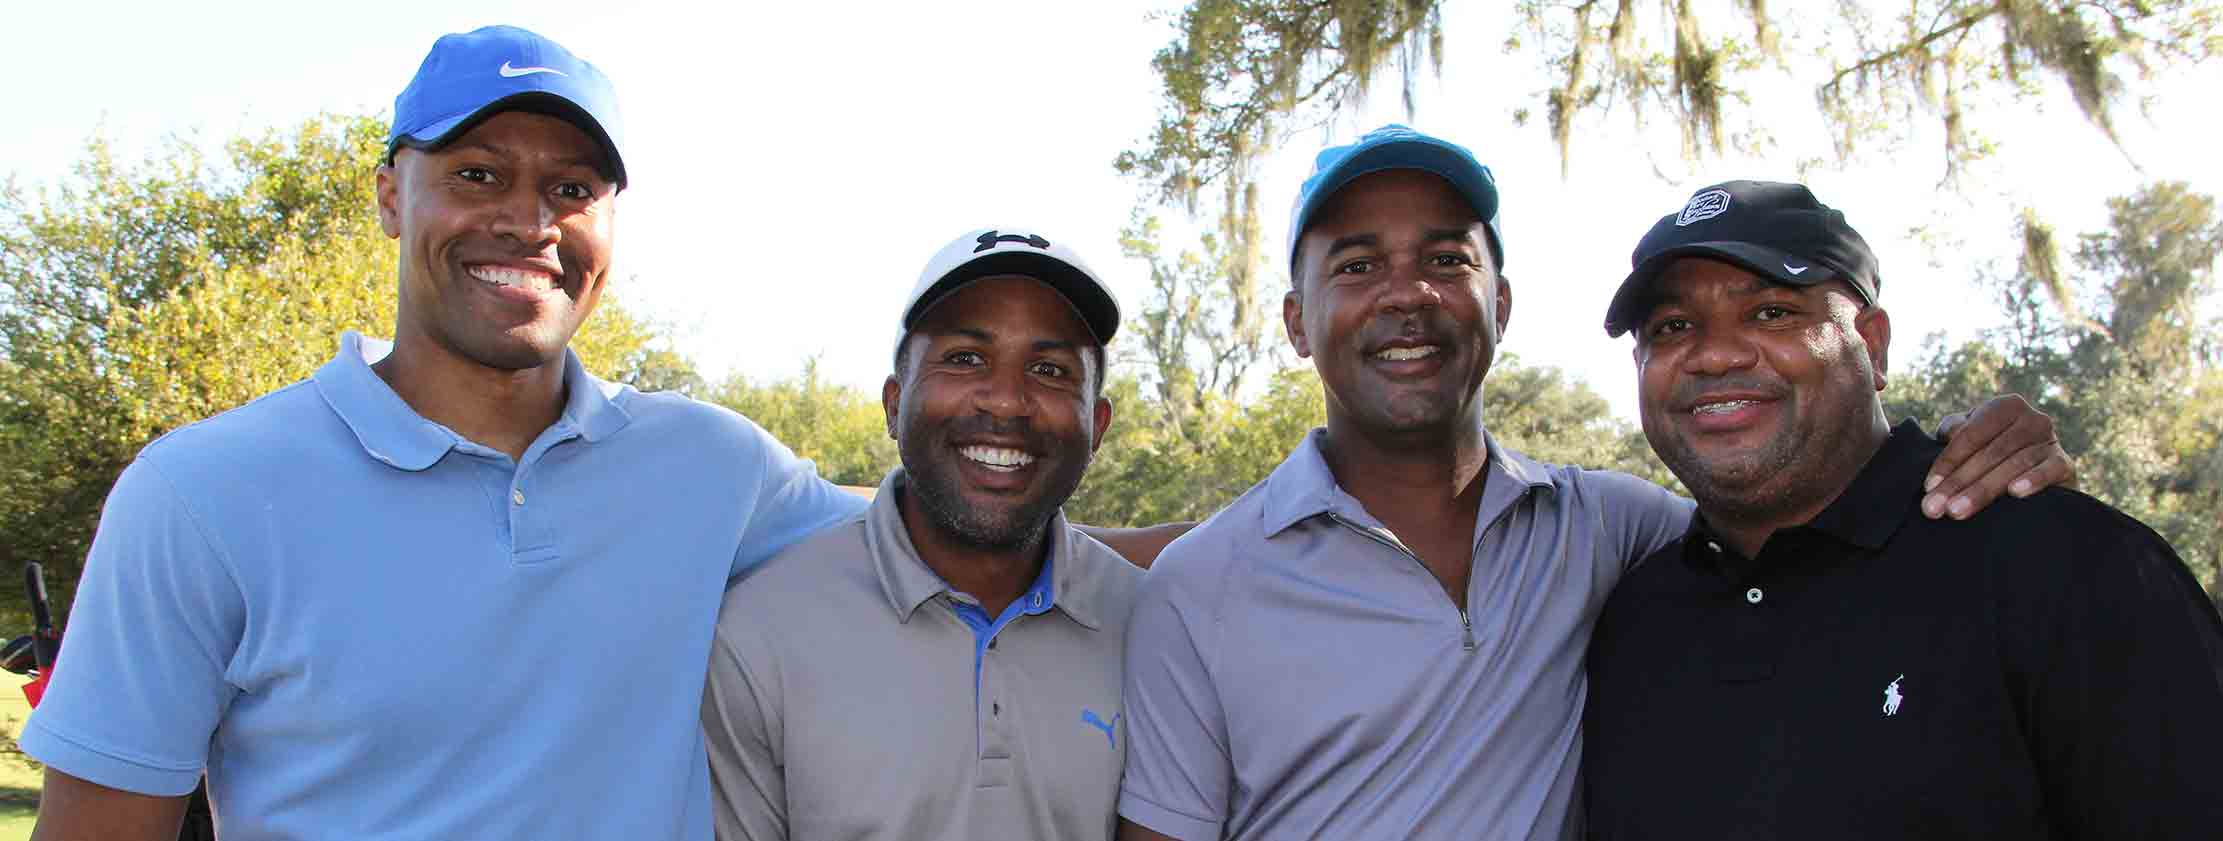 port freeport host a fun golf tournament